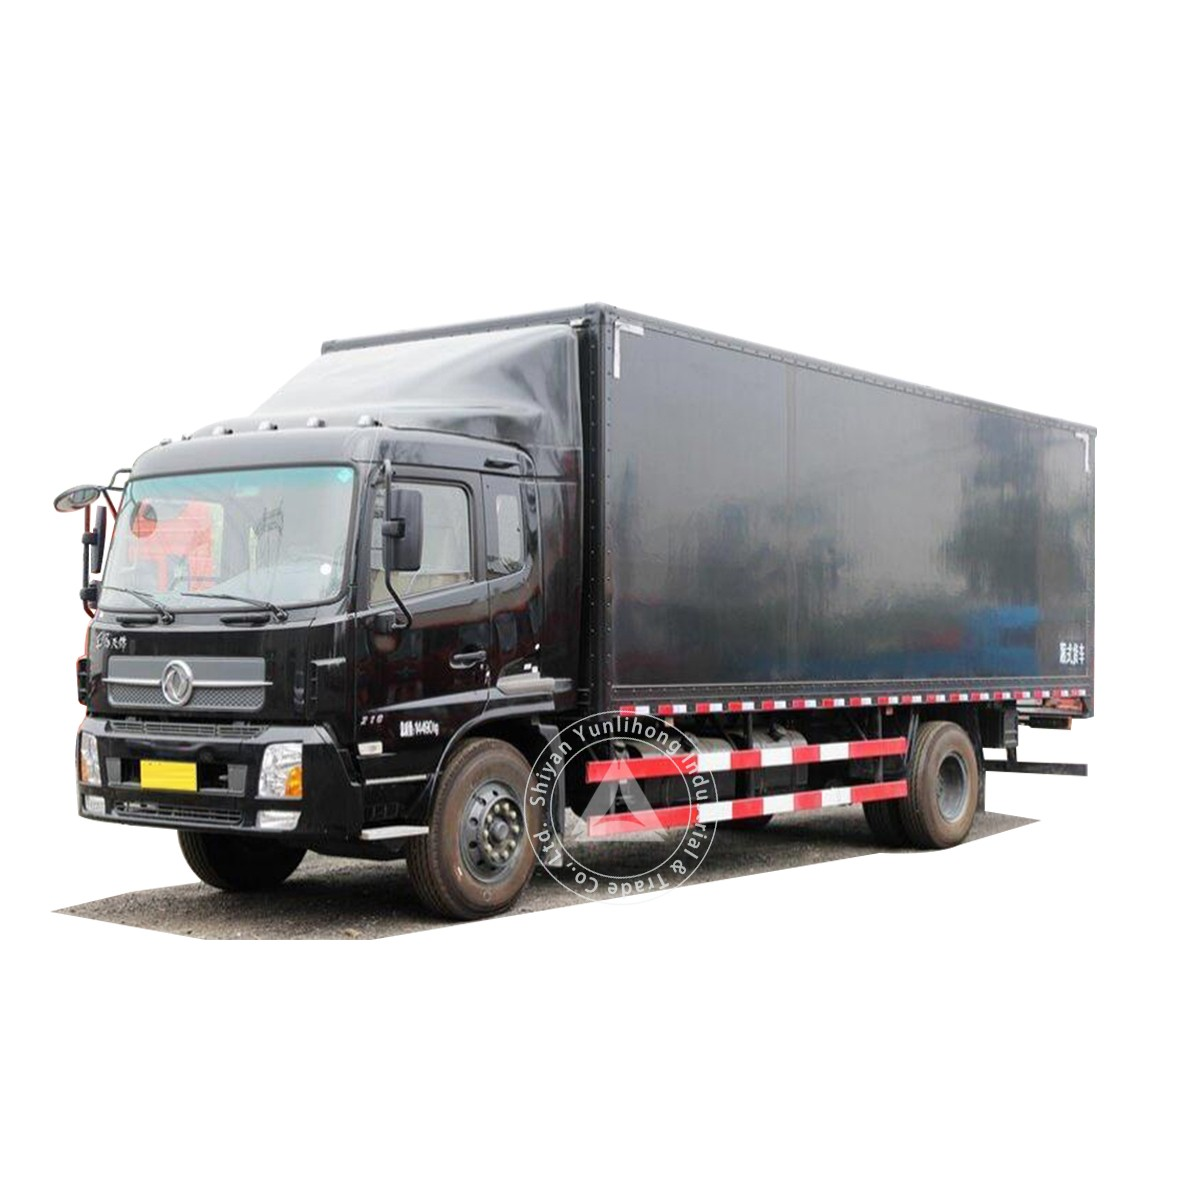 Dongfeng KR 4x2 180hp GVW 14 tonnes camion Express & Postal Box